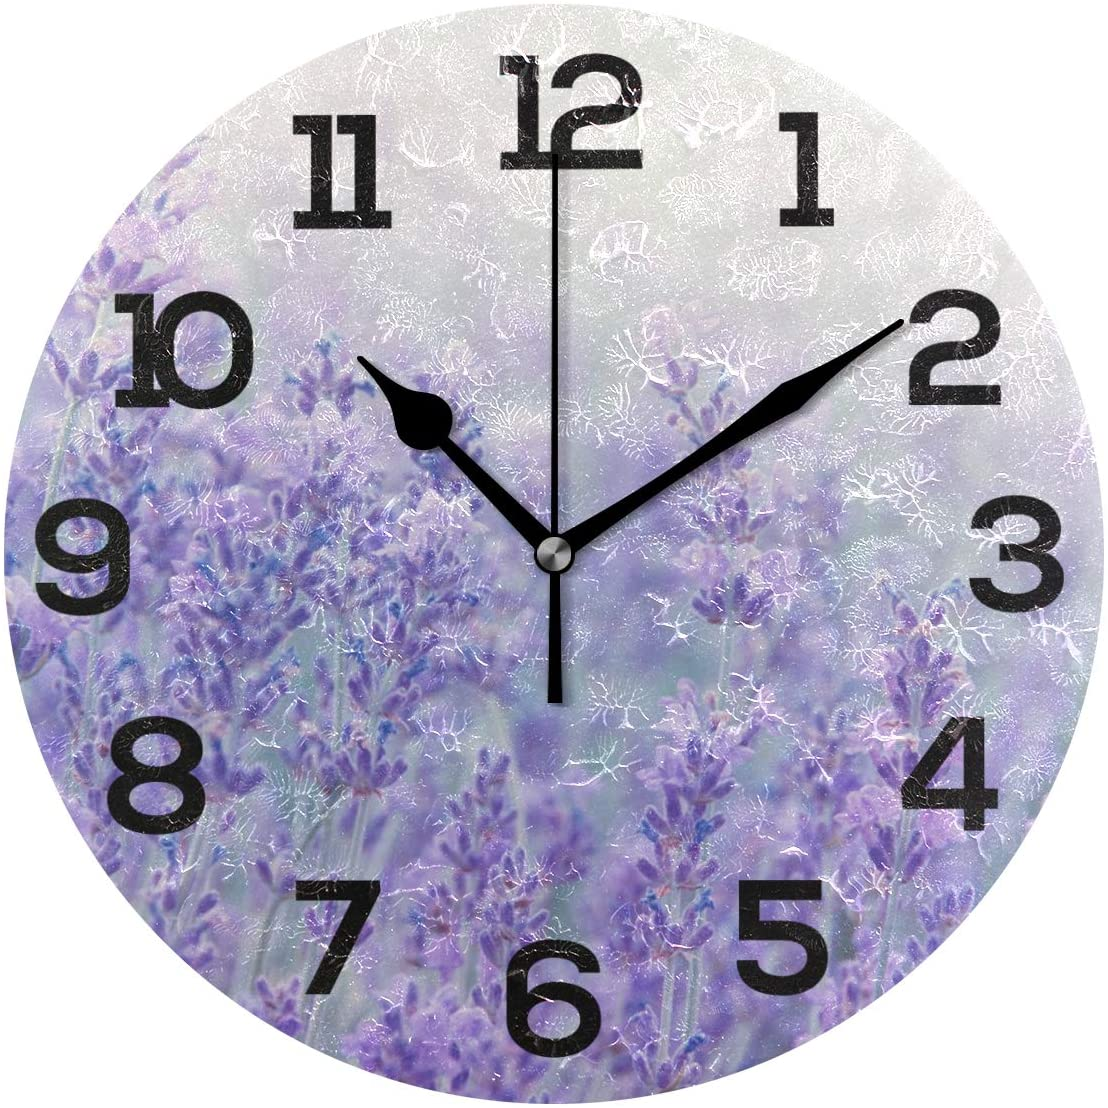 IMONKA Lavender Purple Round Wall Clock Non Ticking Silent Acrylic Clocks for Home Decor Living Room Bedroom Kitchen School Office